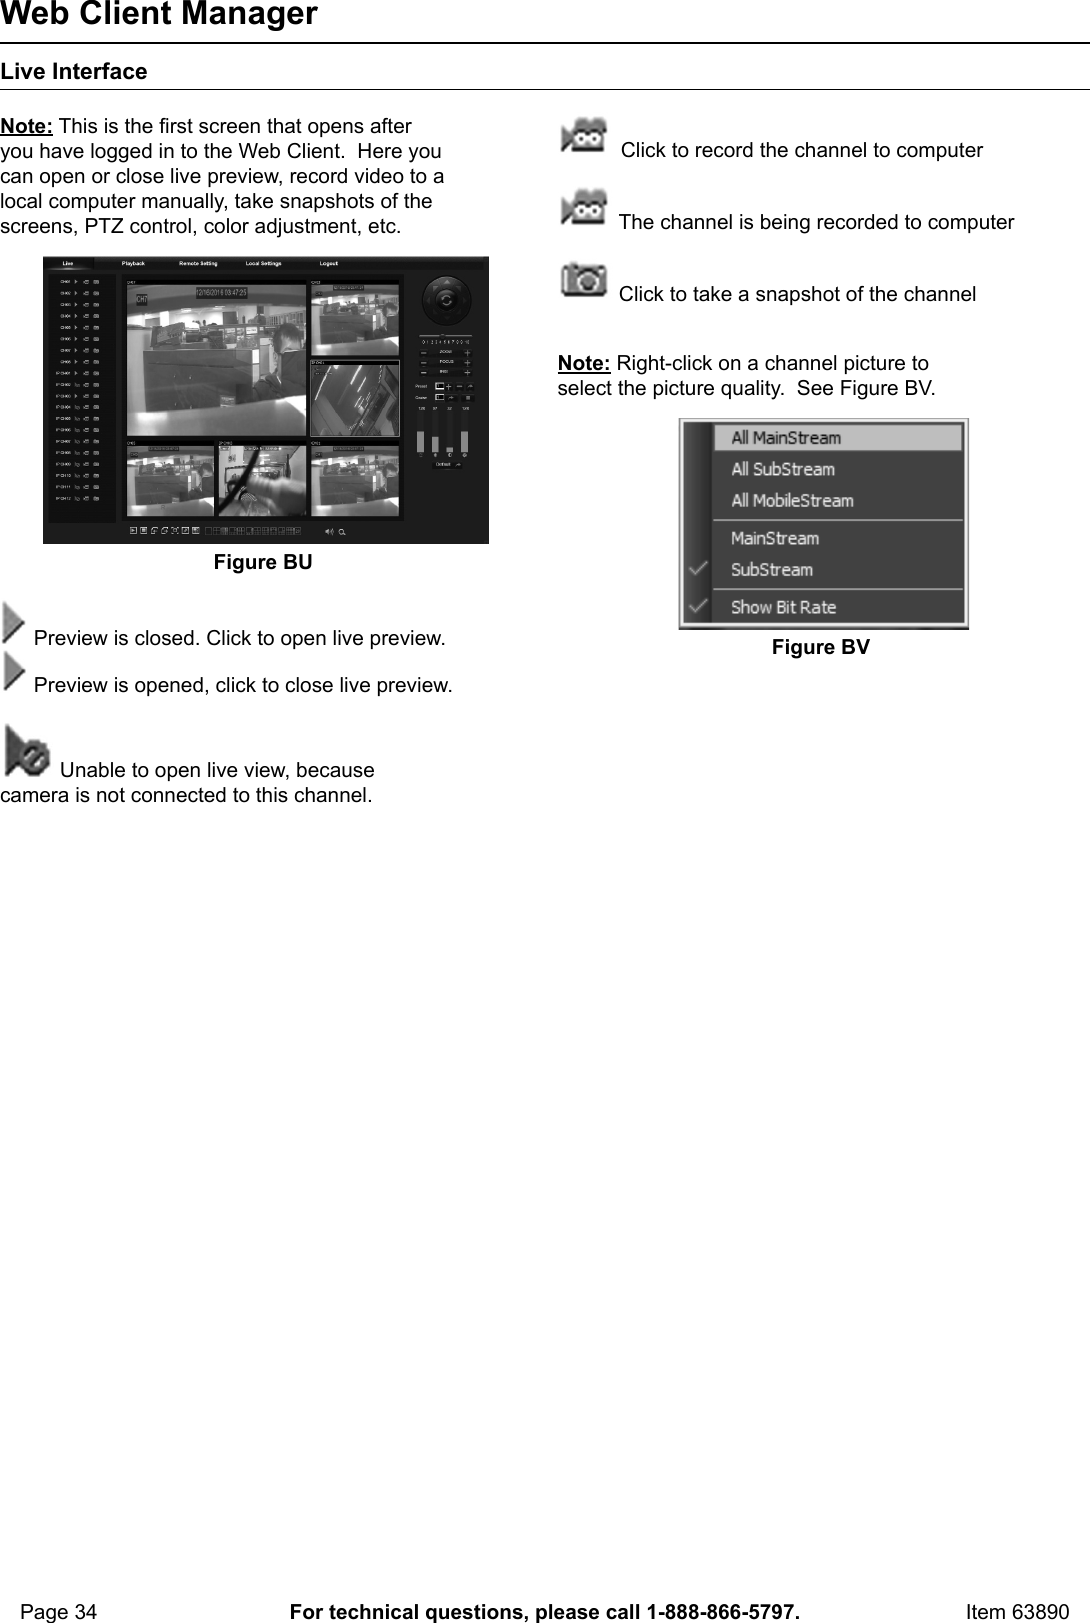 Manual For The 63890 8 Channel Surveillance DVR With 4 HD Cameras